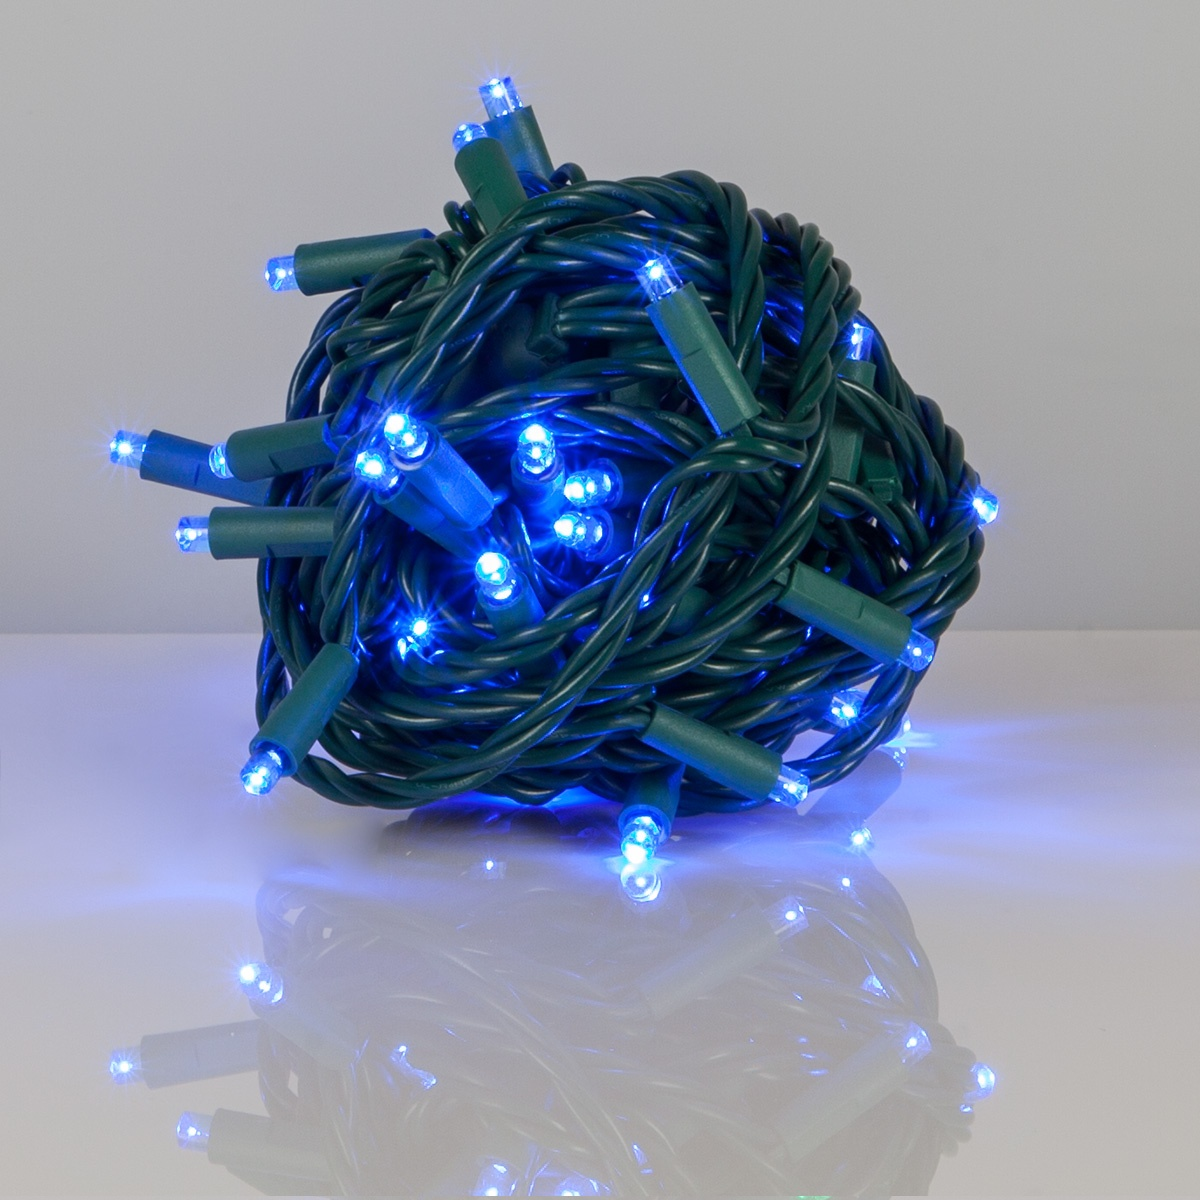 Christmas Tree Shop Connecticut: Kringle Traditions 5mm Blue LED Christmas Lights, Green